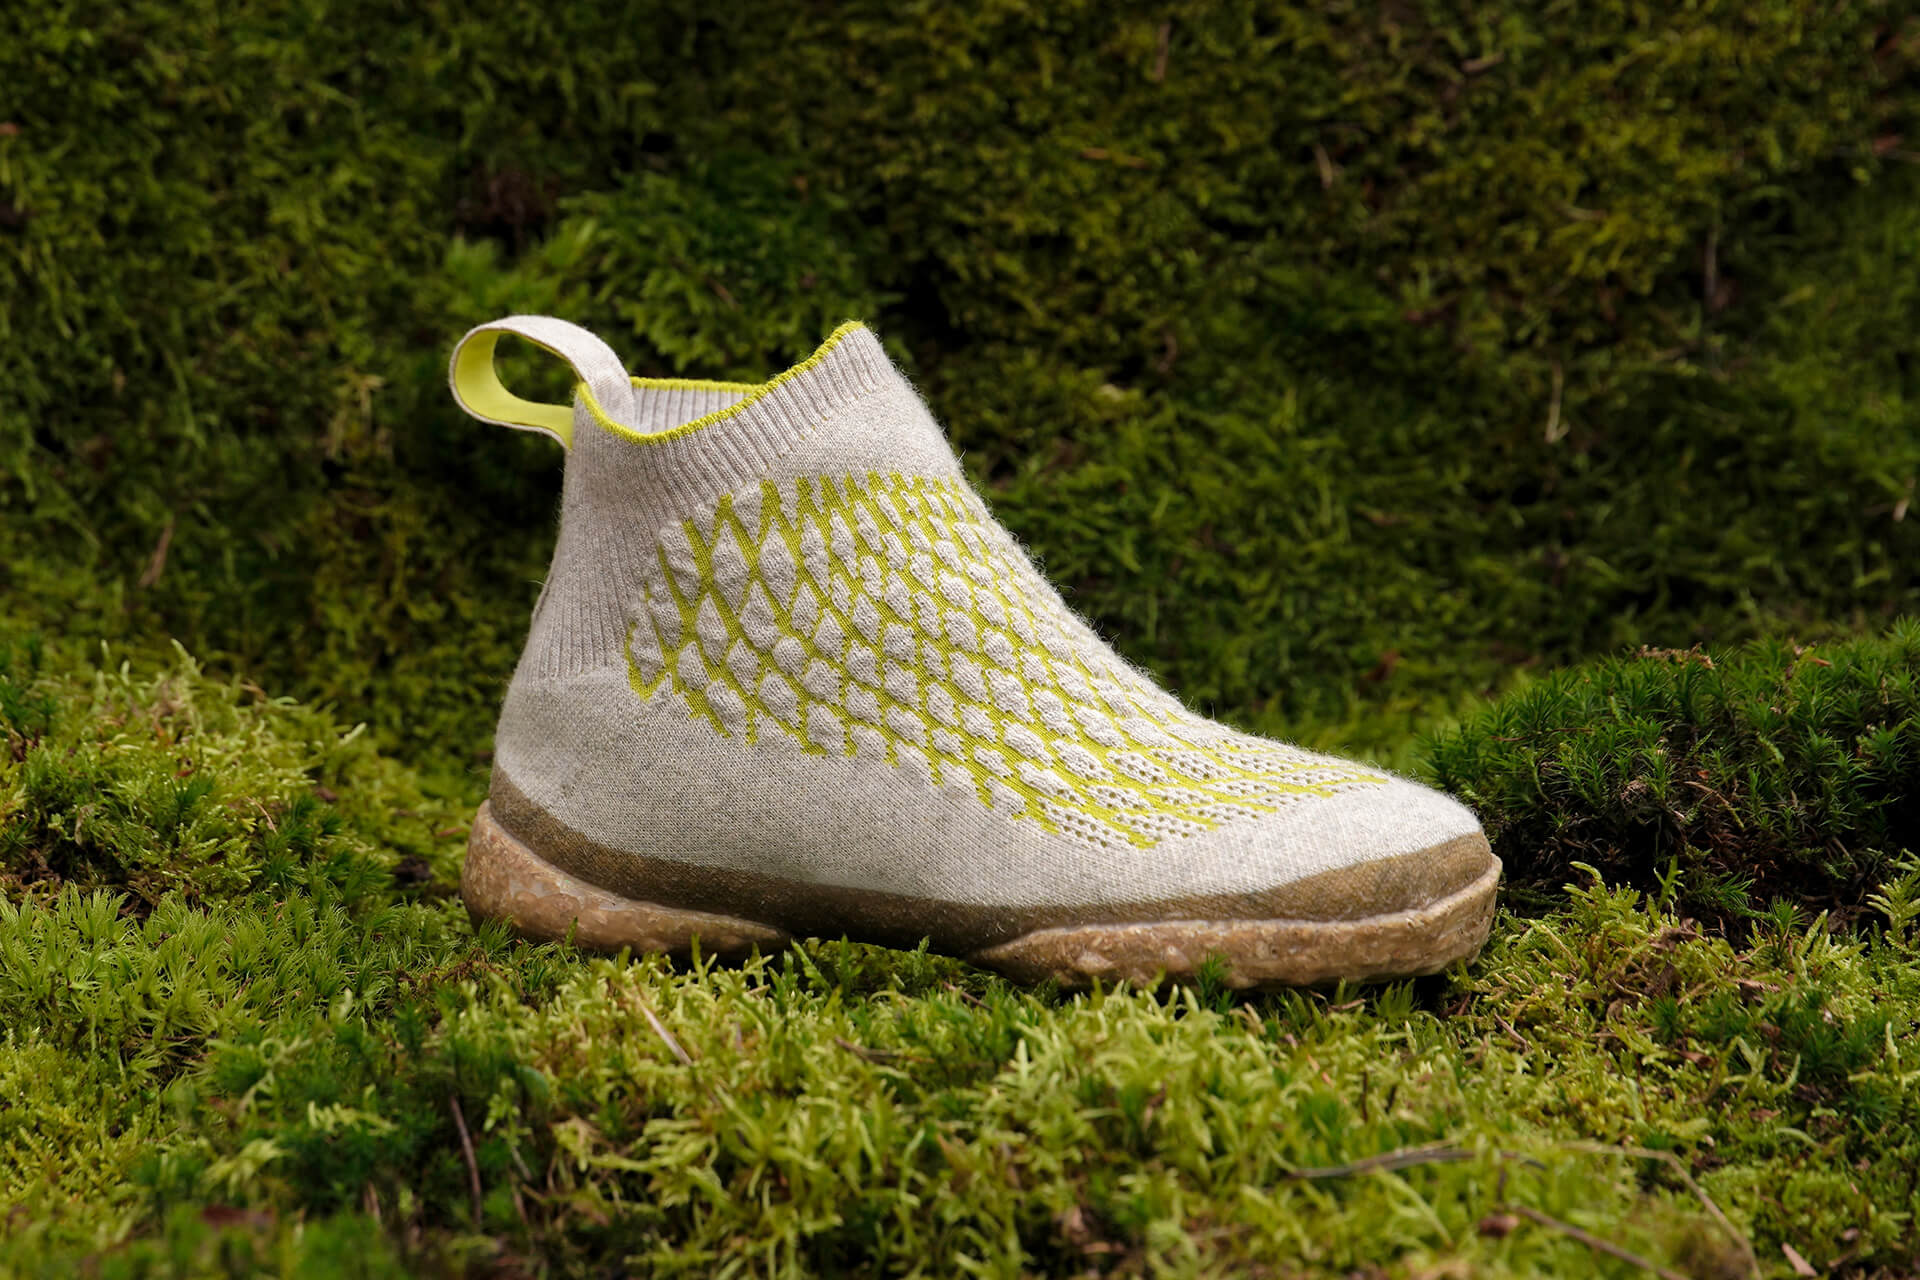 The natural properties of the shoe's fabric provide water absorption and exhibit anti-static properties  Sneature bio-shoes   Emilie Burfeind   STIRworld